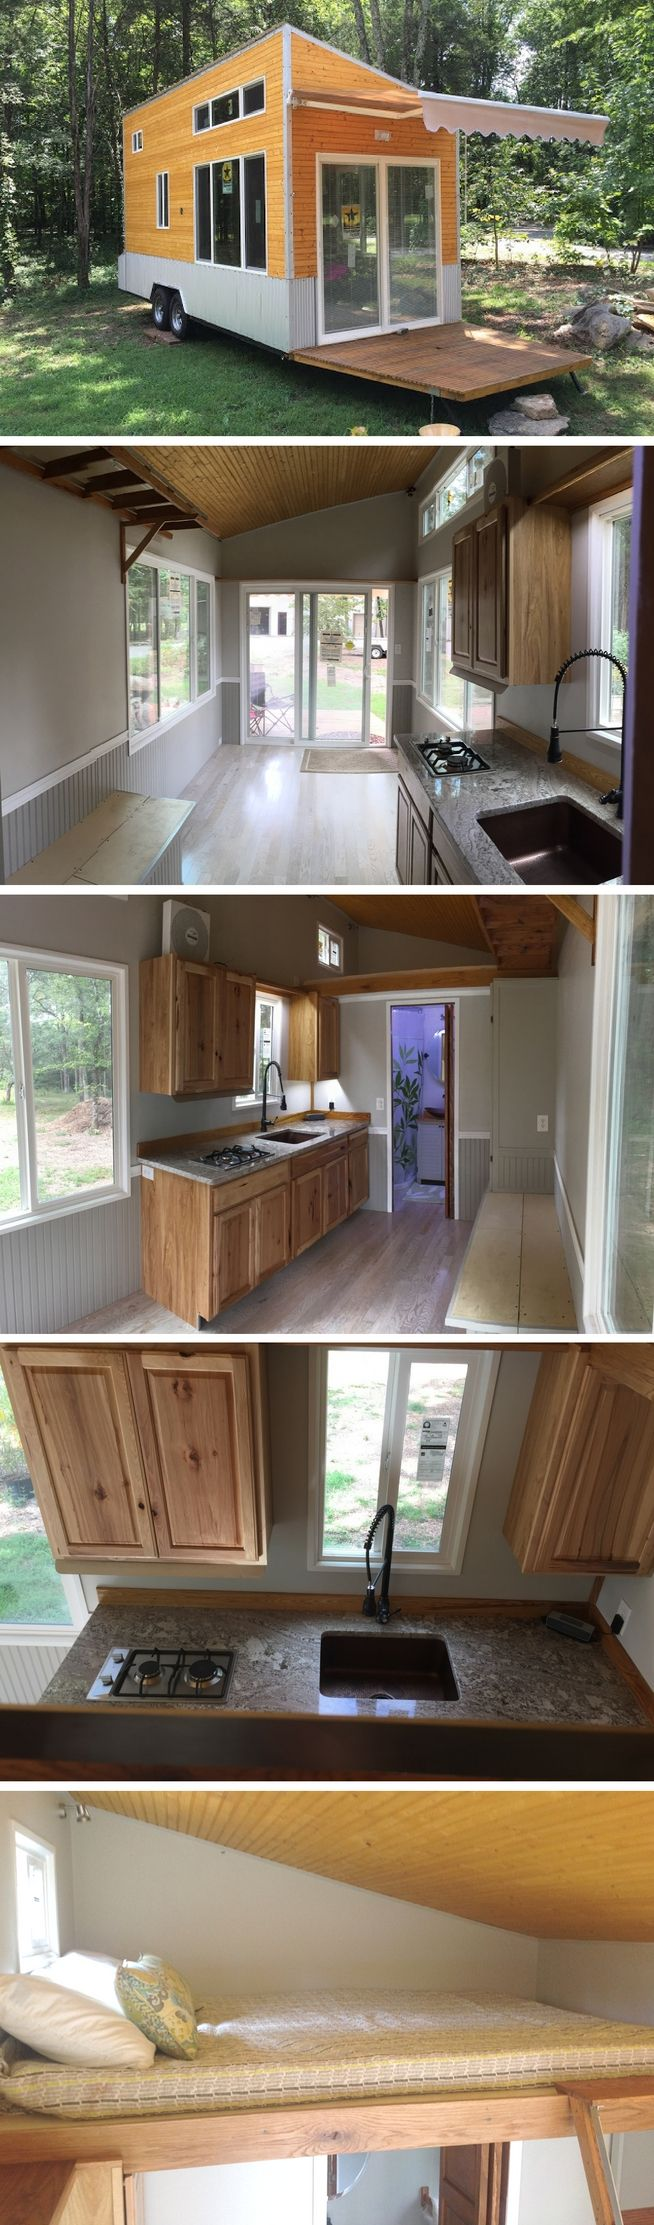 Little House On Wheels a 200 sq ft tiny house that's off grid compatible! currently for